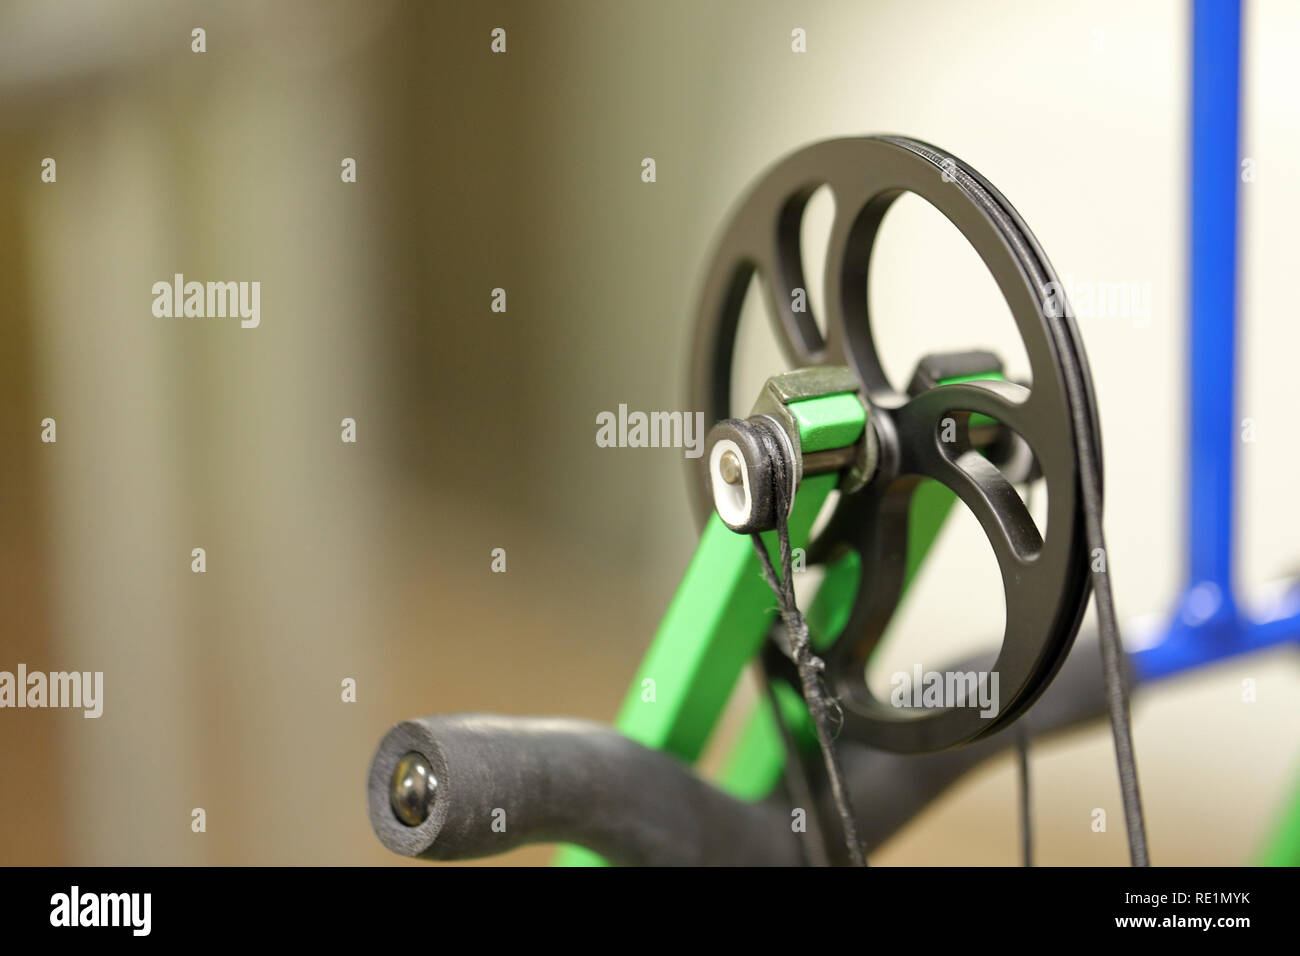 Archery Bow Cam with space for text and copy - Stock Image